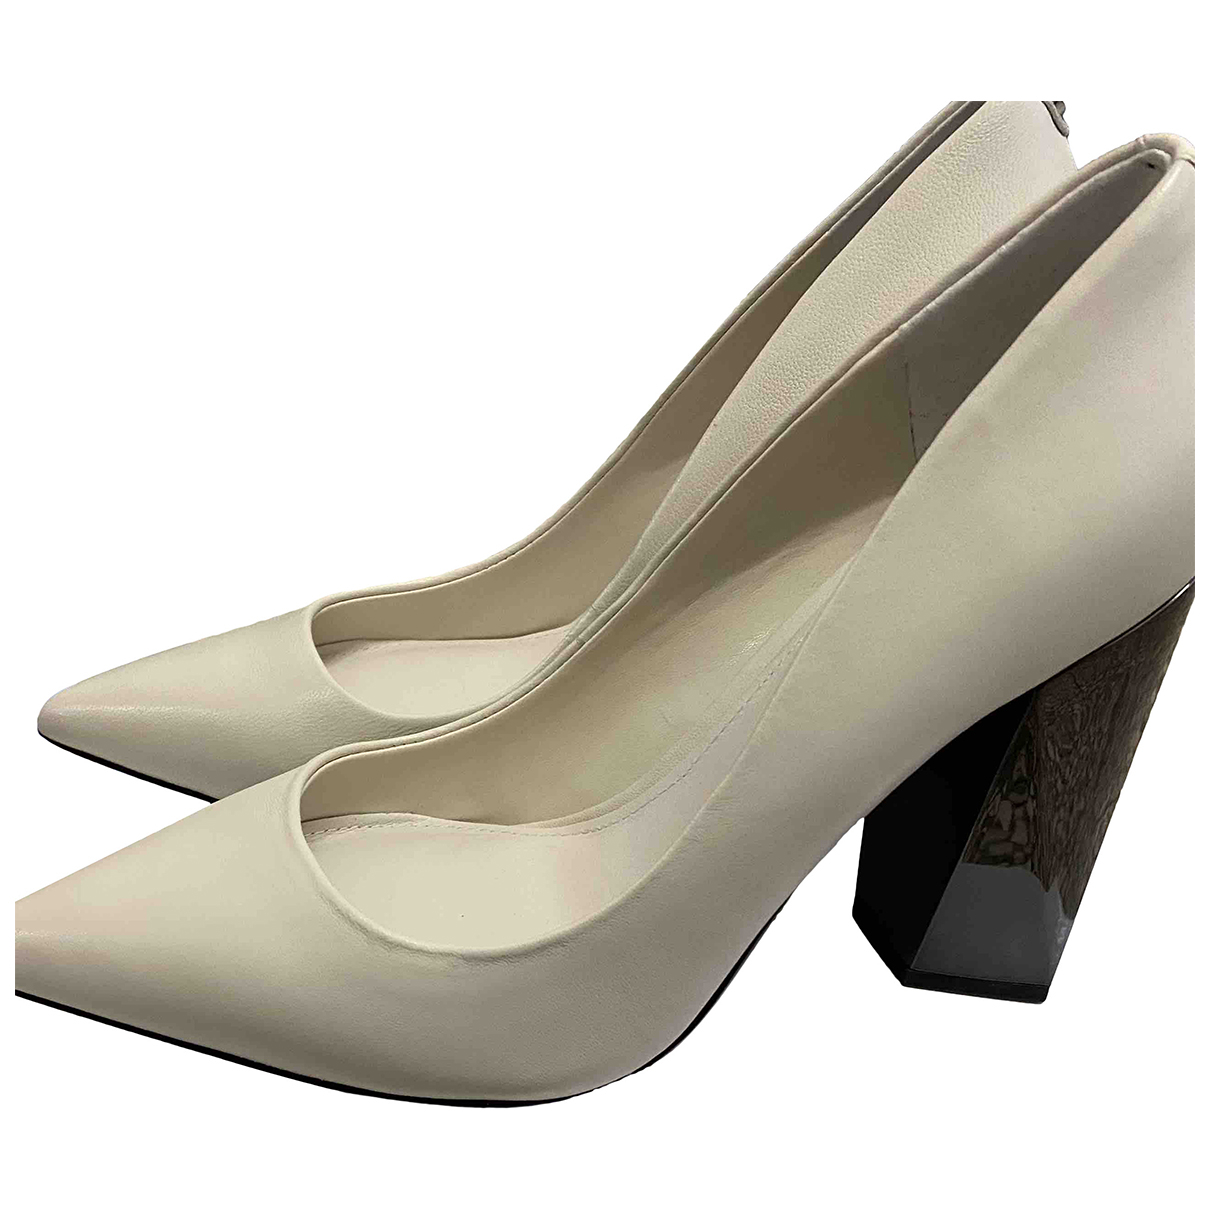 Guess N White Leather Heels for Women 37 EU